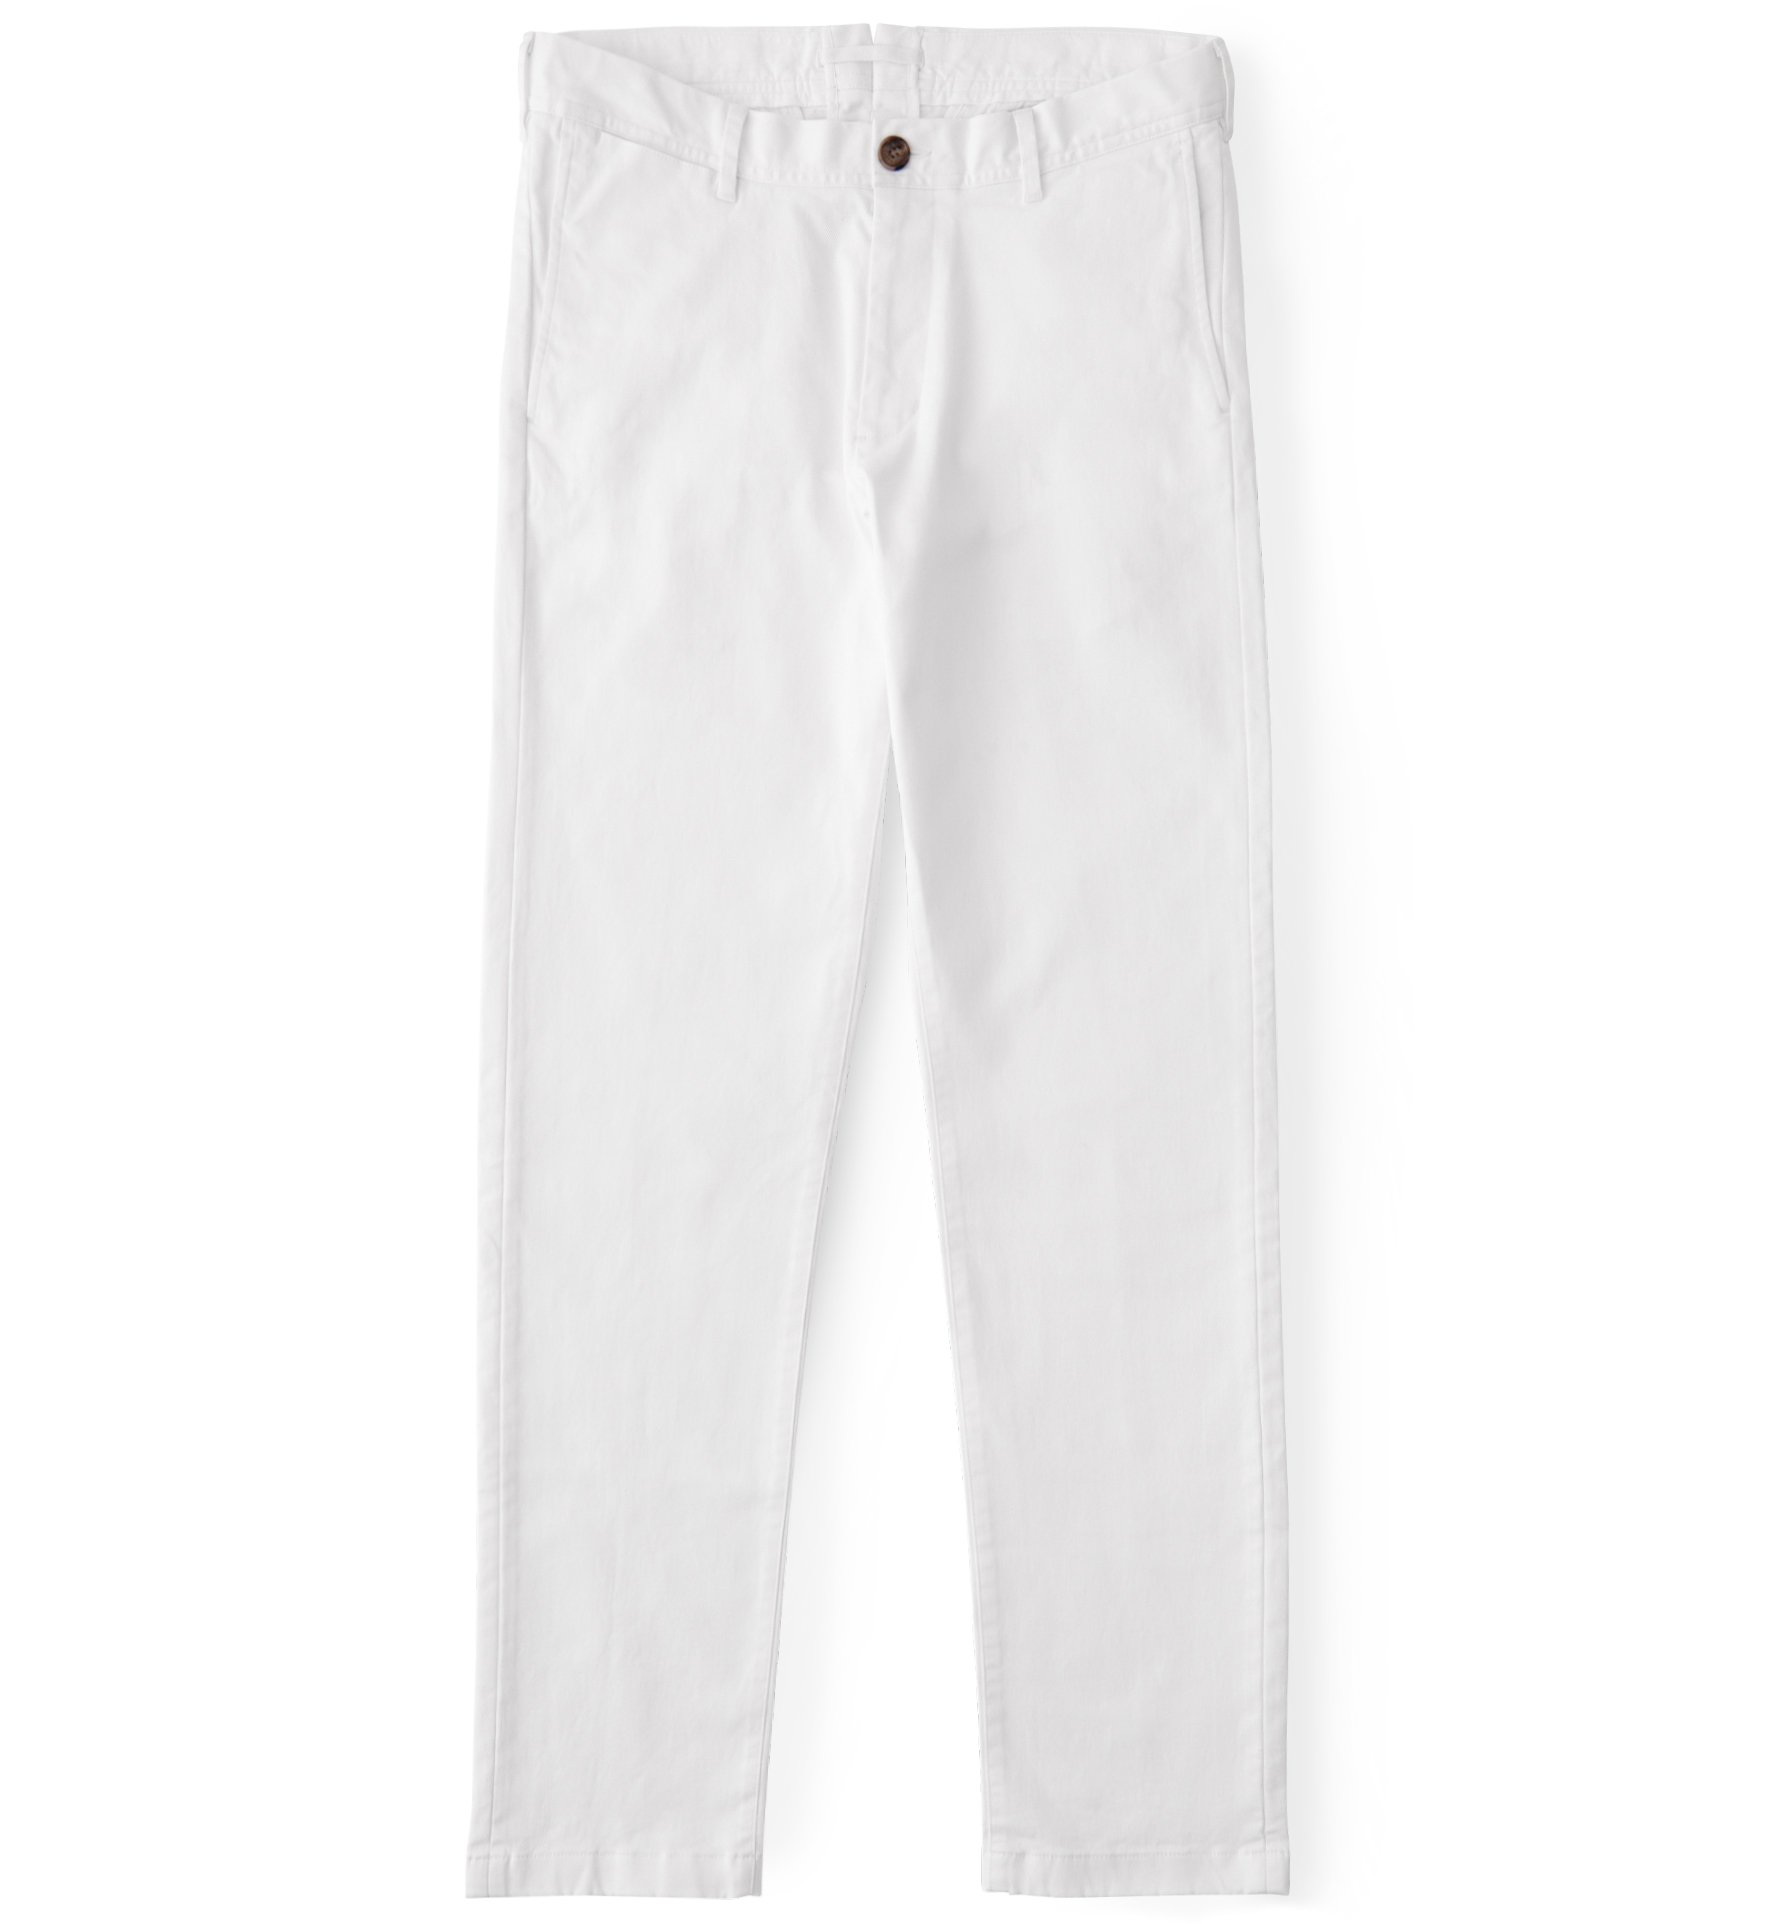 Zoom Image of Bowery White Stretch Heavy Cotton Chino